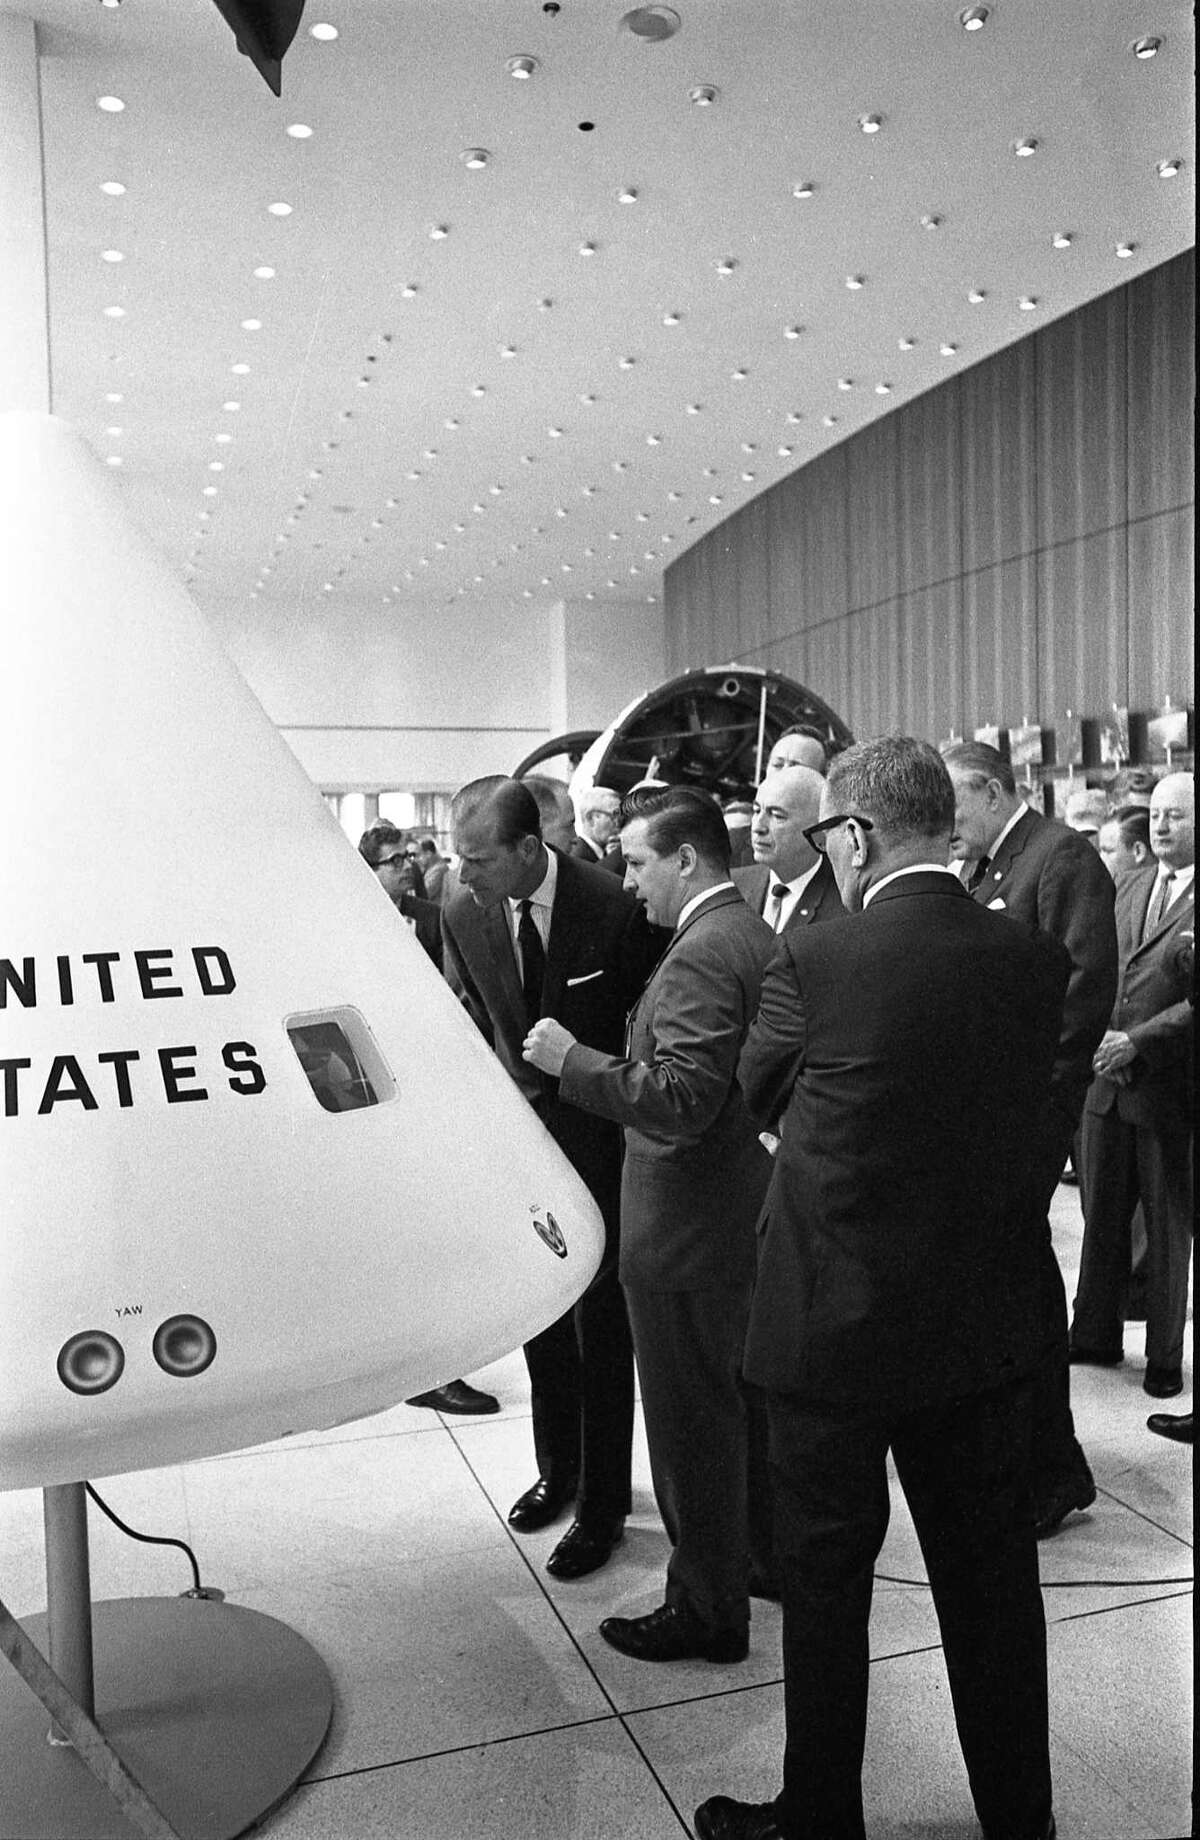 03/11/1966 - Prince Philip, Duke of Edinburgh, is briefed on spacecraft during tour of the Manned Spacecraft Center in Houston.